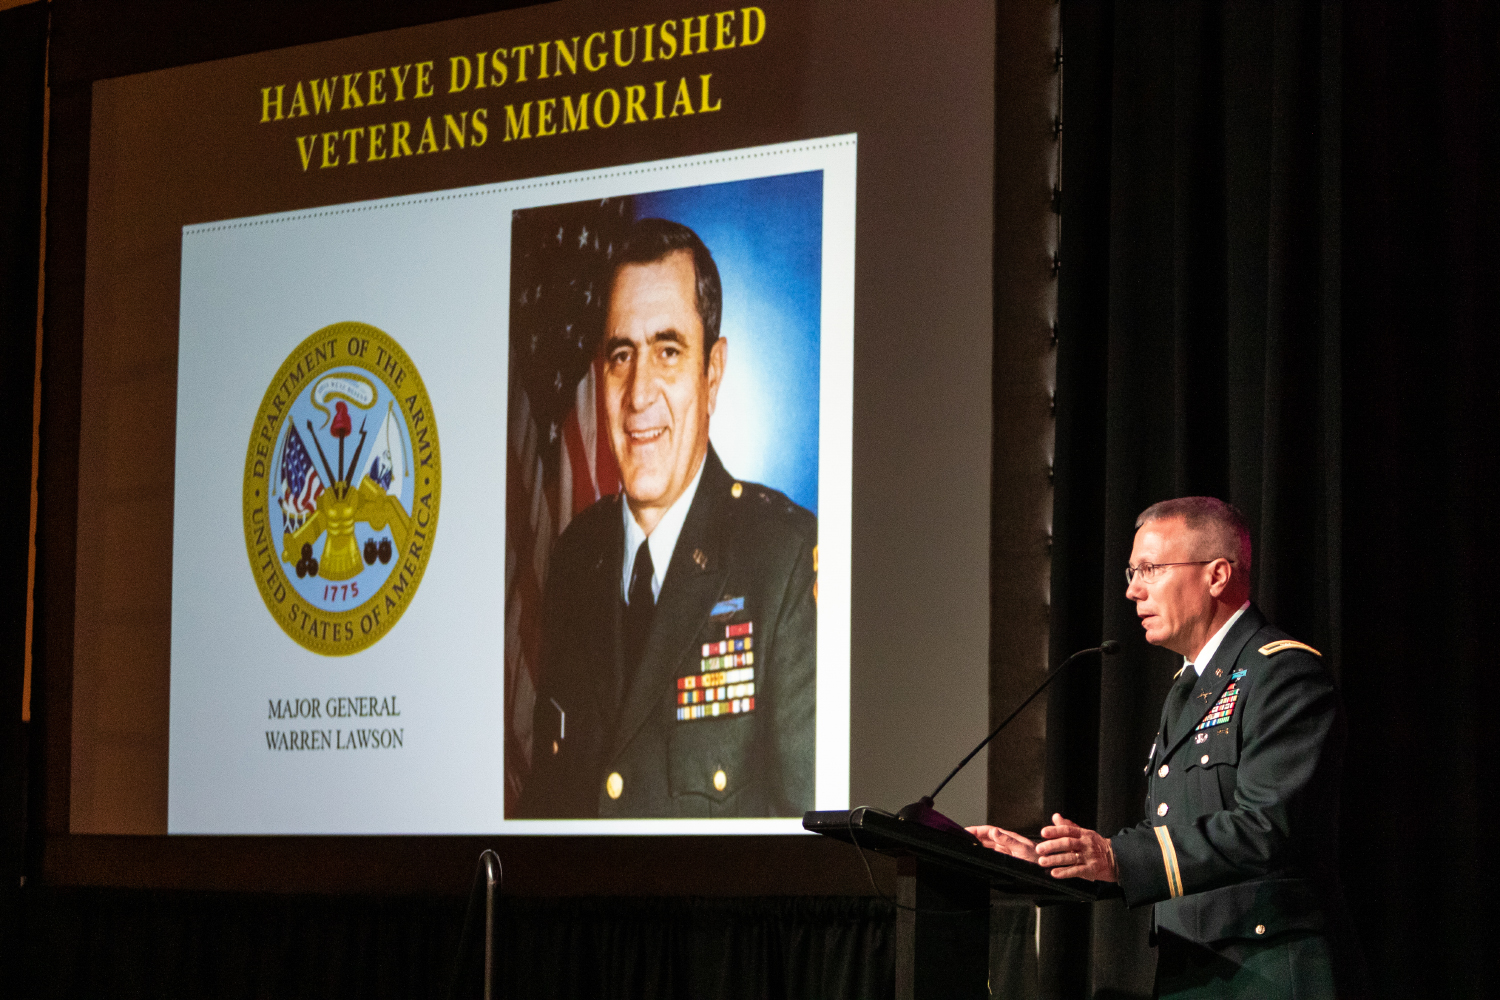 Col. David Nixon of the Iowa Army National Guard receives a Hawkeye Distinguished Veteran's Award on behalf of Maj. Gen. Warren Lawson at the IMU on Thursday, Nov. 15, 2018. Lawson played center for the Iowa football team as an undergrad and was the team's MVP in 1954.